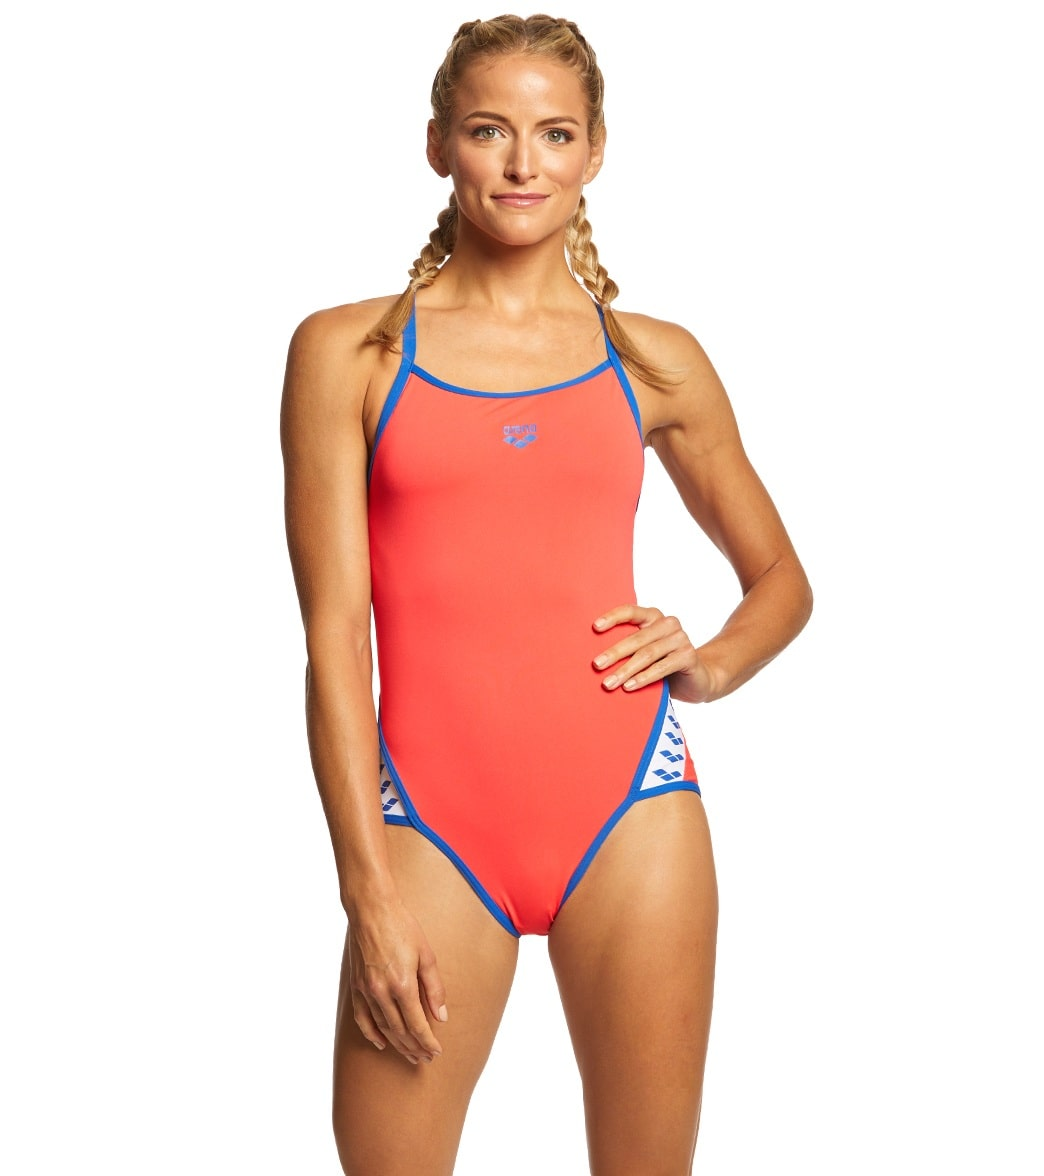 432ced5621b8e Arena Women s Team Stripe MaxLife SuperFly Back One Piece Swimsuit. Black  White ...